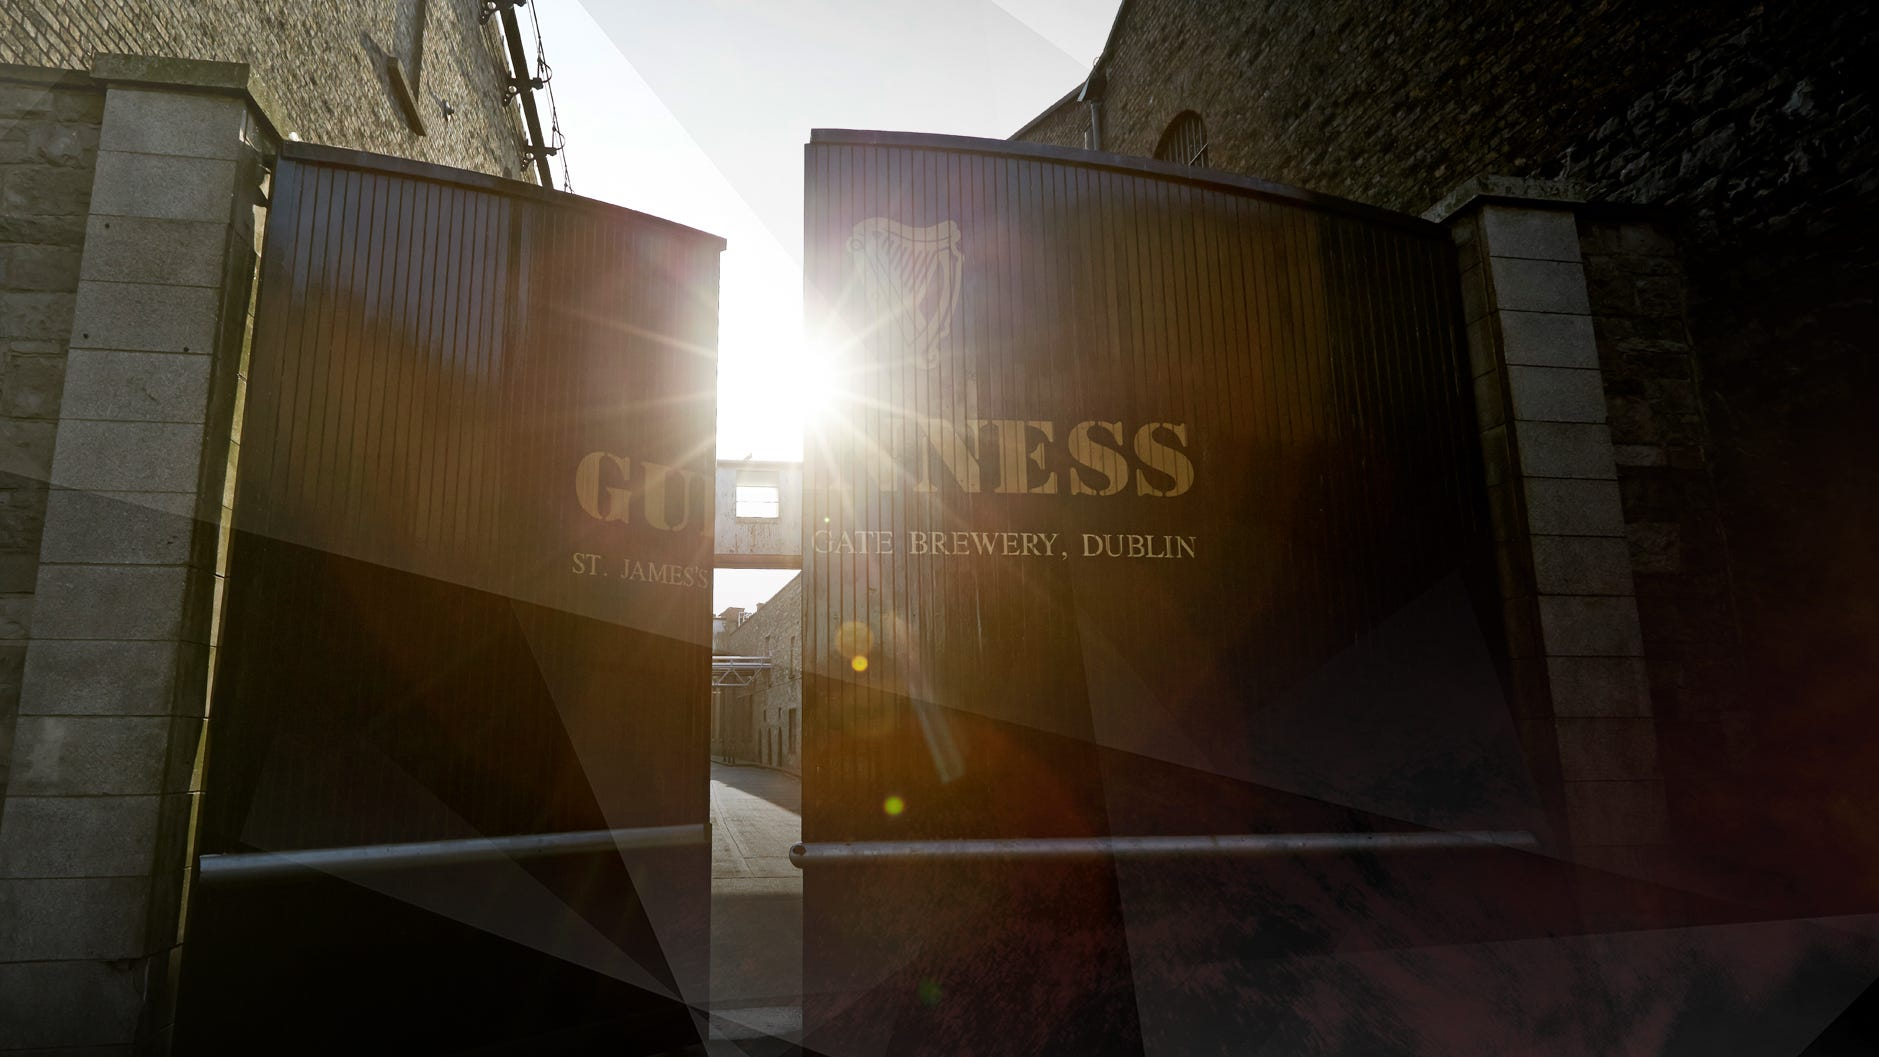 Guinness Storehouse Opens Up Brewery In First Behind-the-scenes Public Tours photo